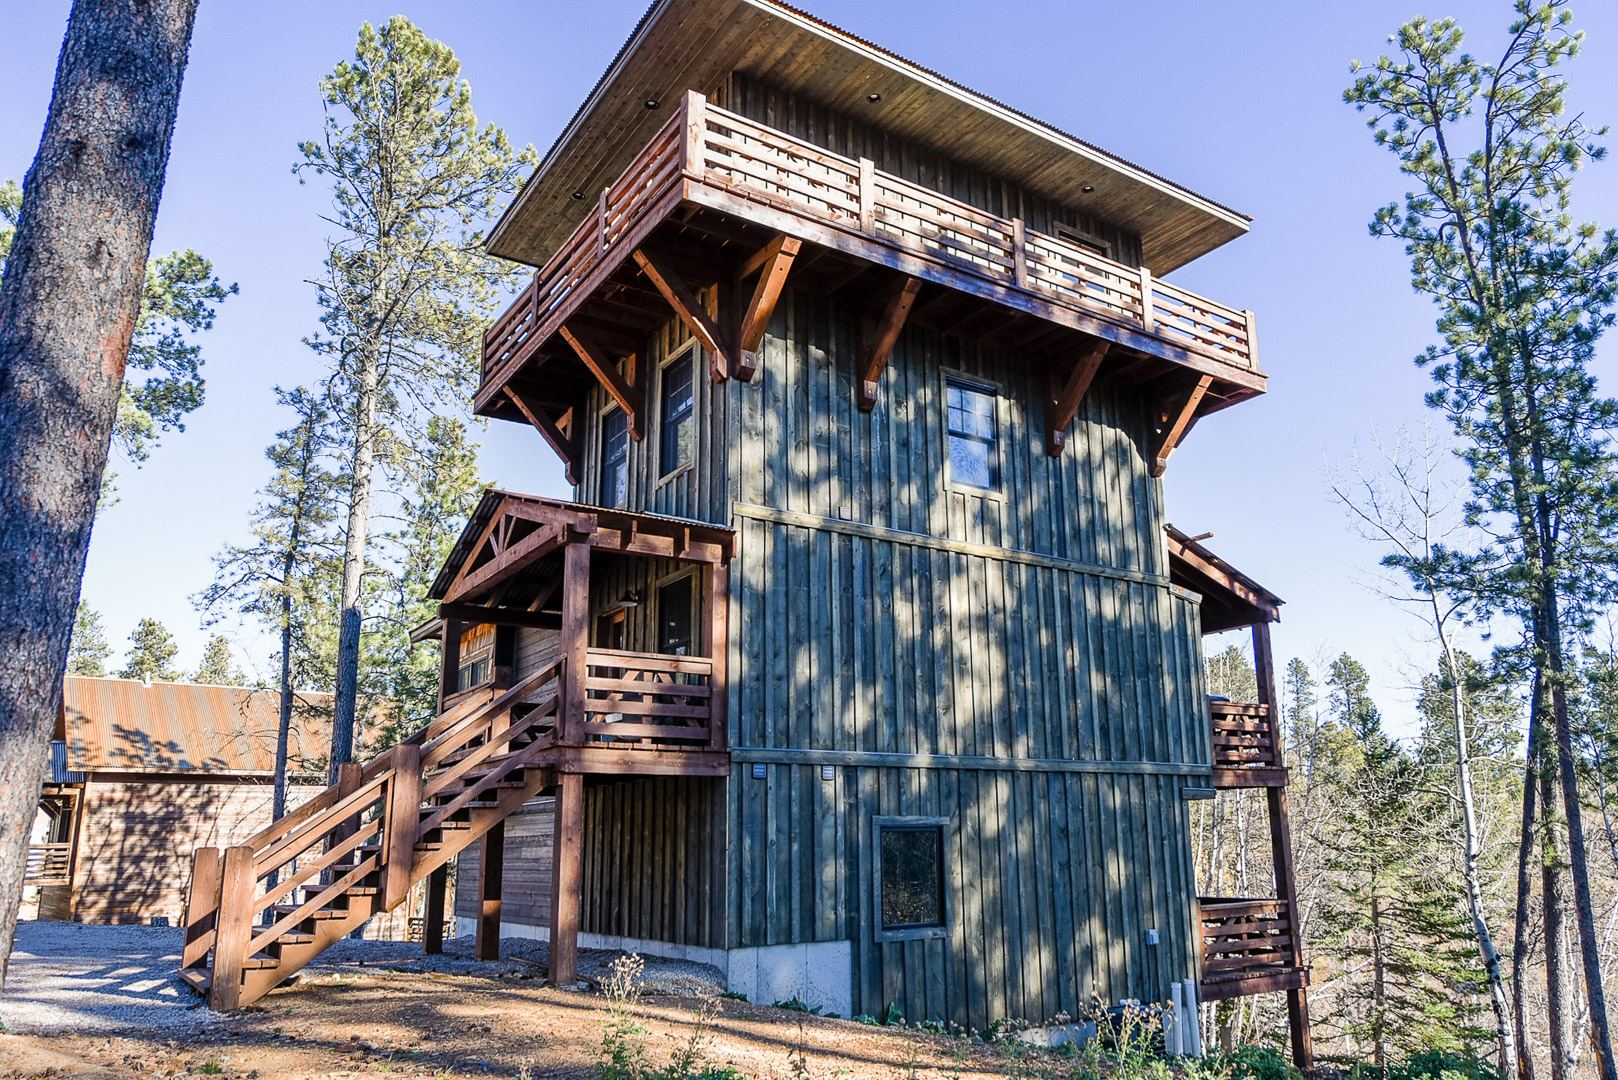 House plans with lookout towers for Fire tower cabin plans